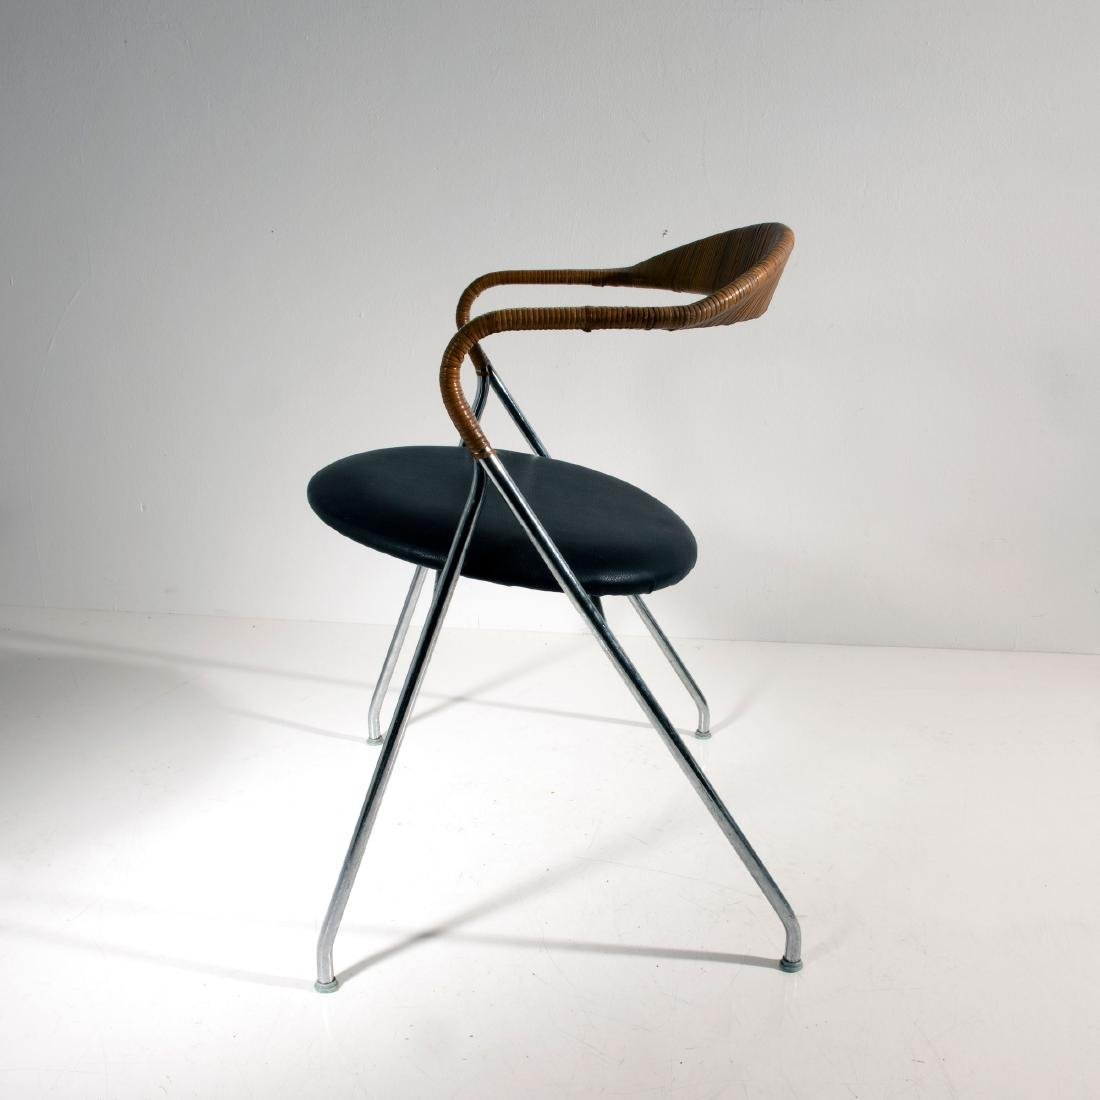 'Saffa' chair 'HE-103', 1955 - 2